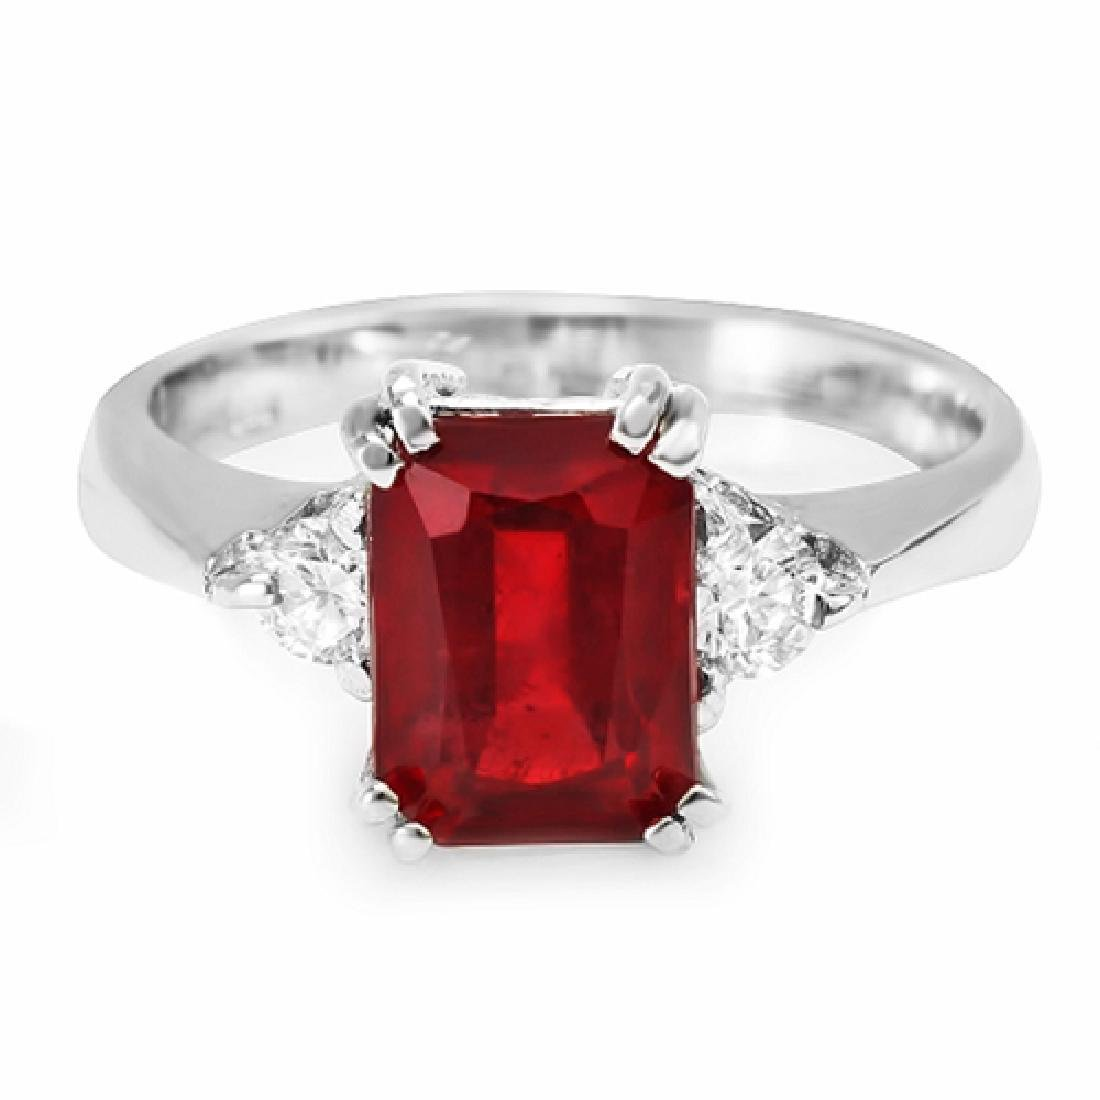 3.16 Carat Natural Ruby 18K Solid White Gold Diamond